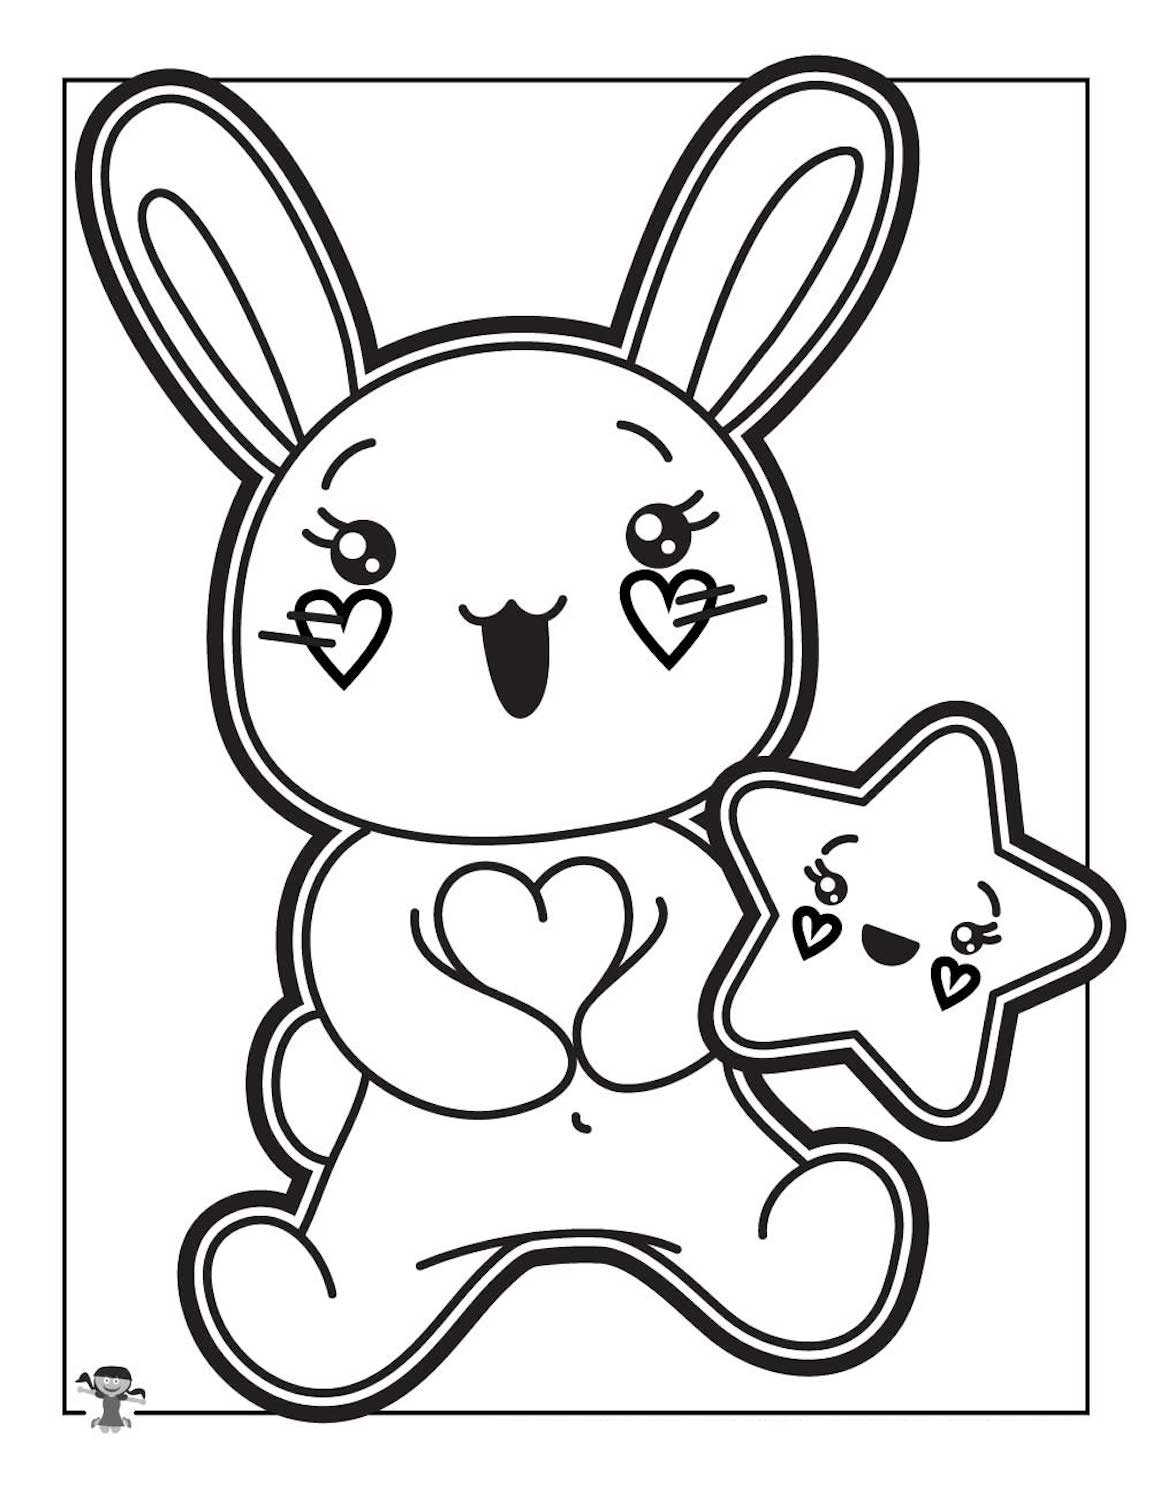 Kawaii Coloring Pages And Other Top 10 Themed Coloring Challenges